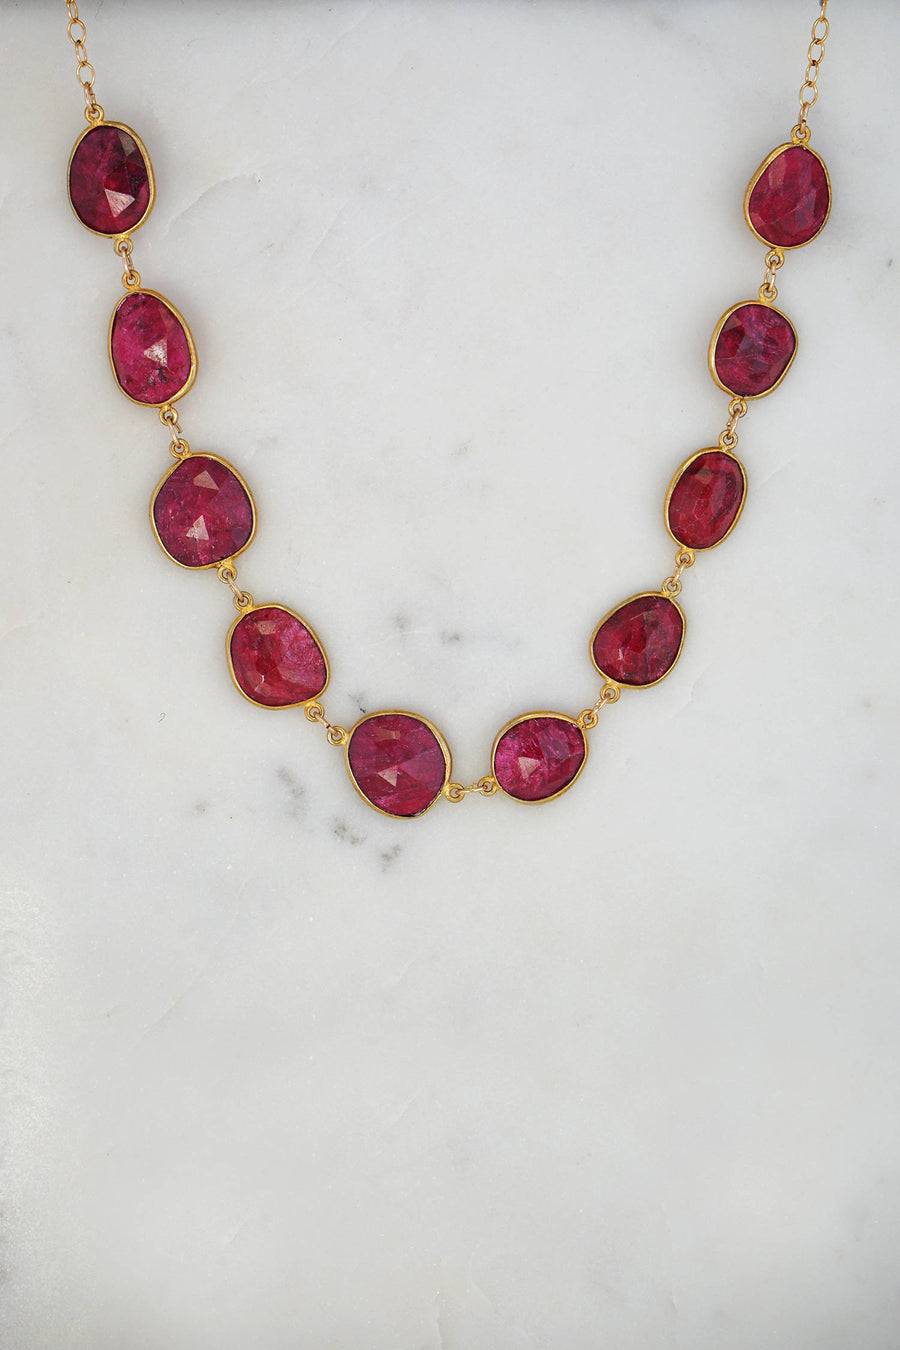 Ruby Necklace. July Birthstone Necklace, Valentine's Gift, Statement Necklace, Gift for her, Gold Filled Necklace, Designer Elegant Necklace